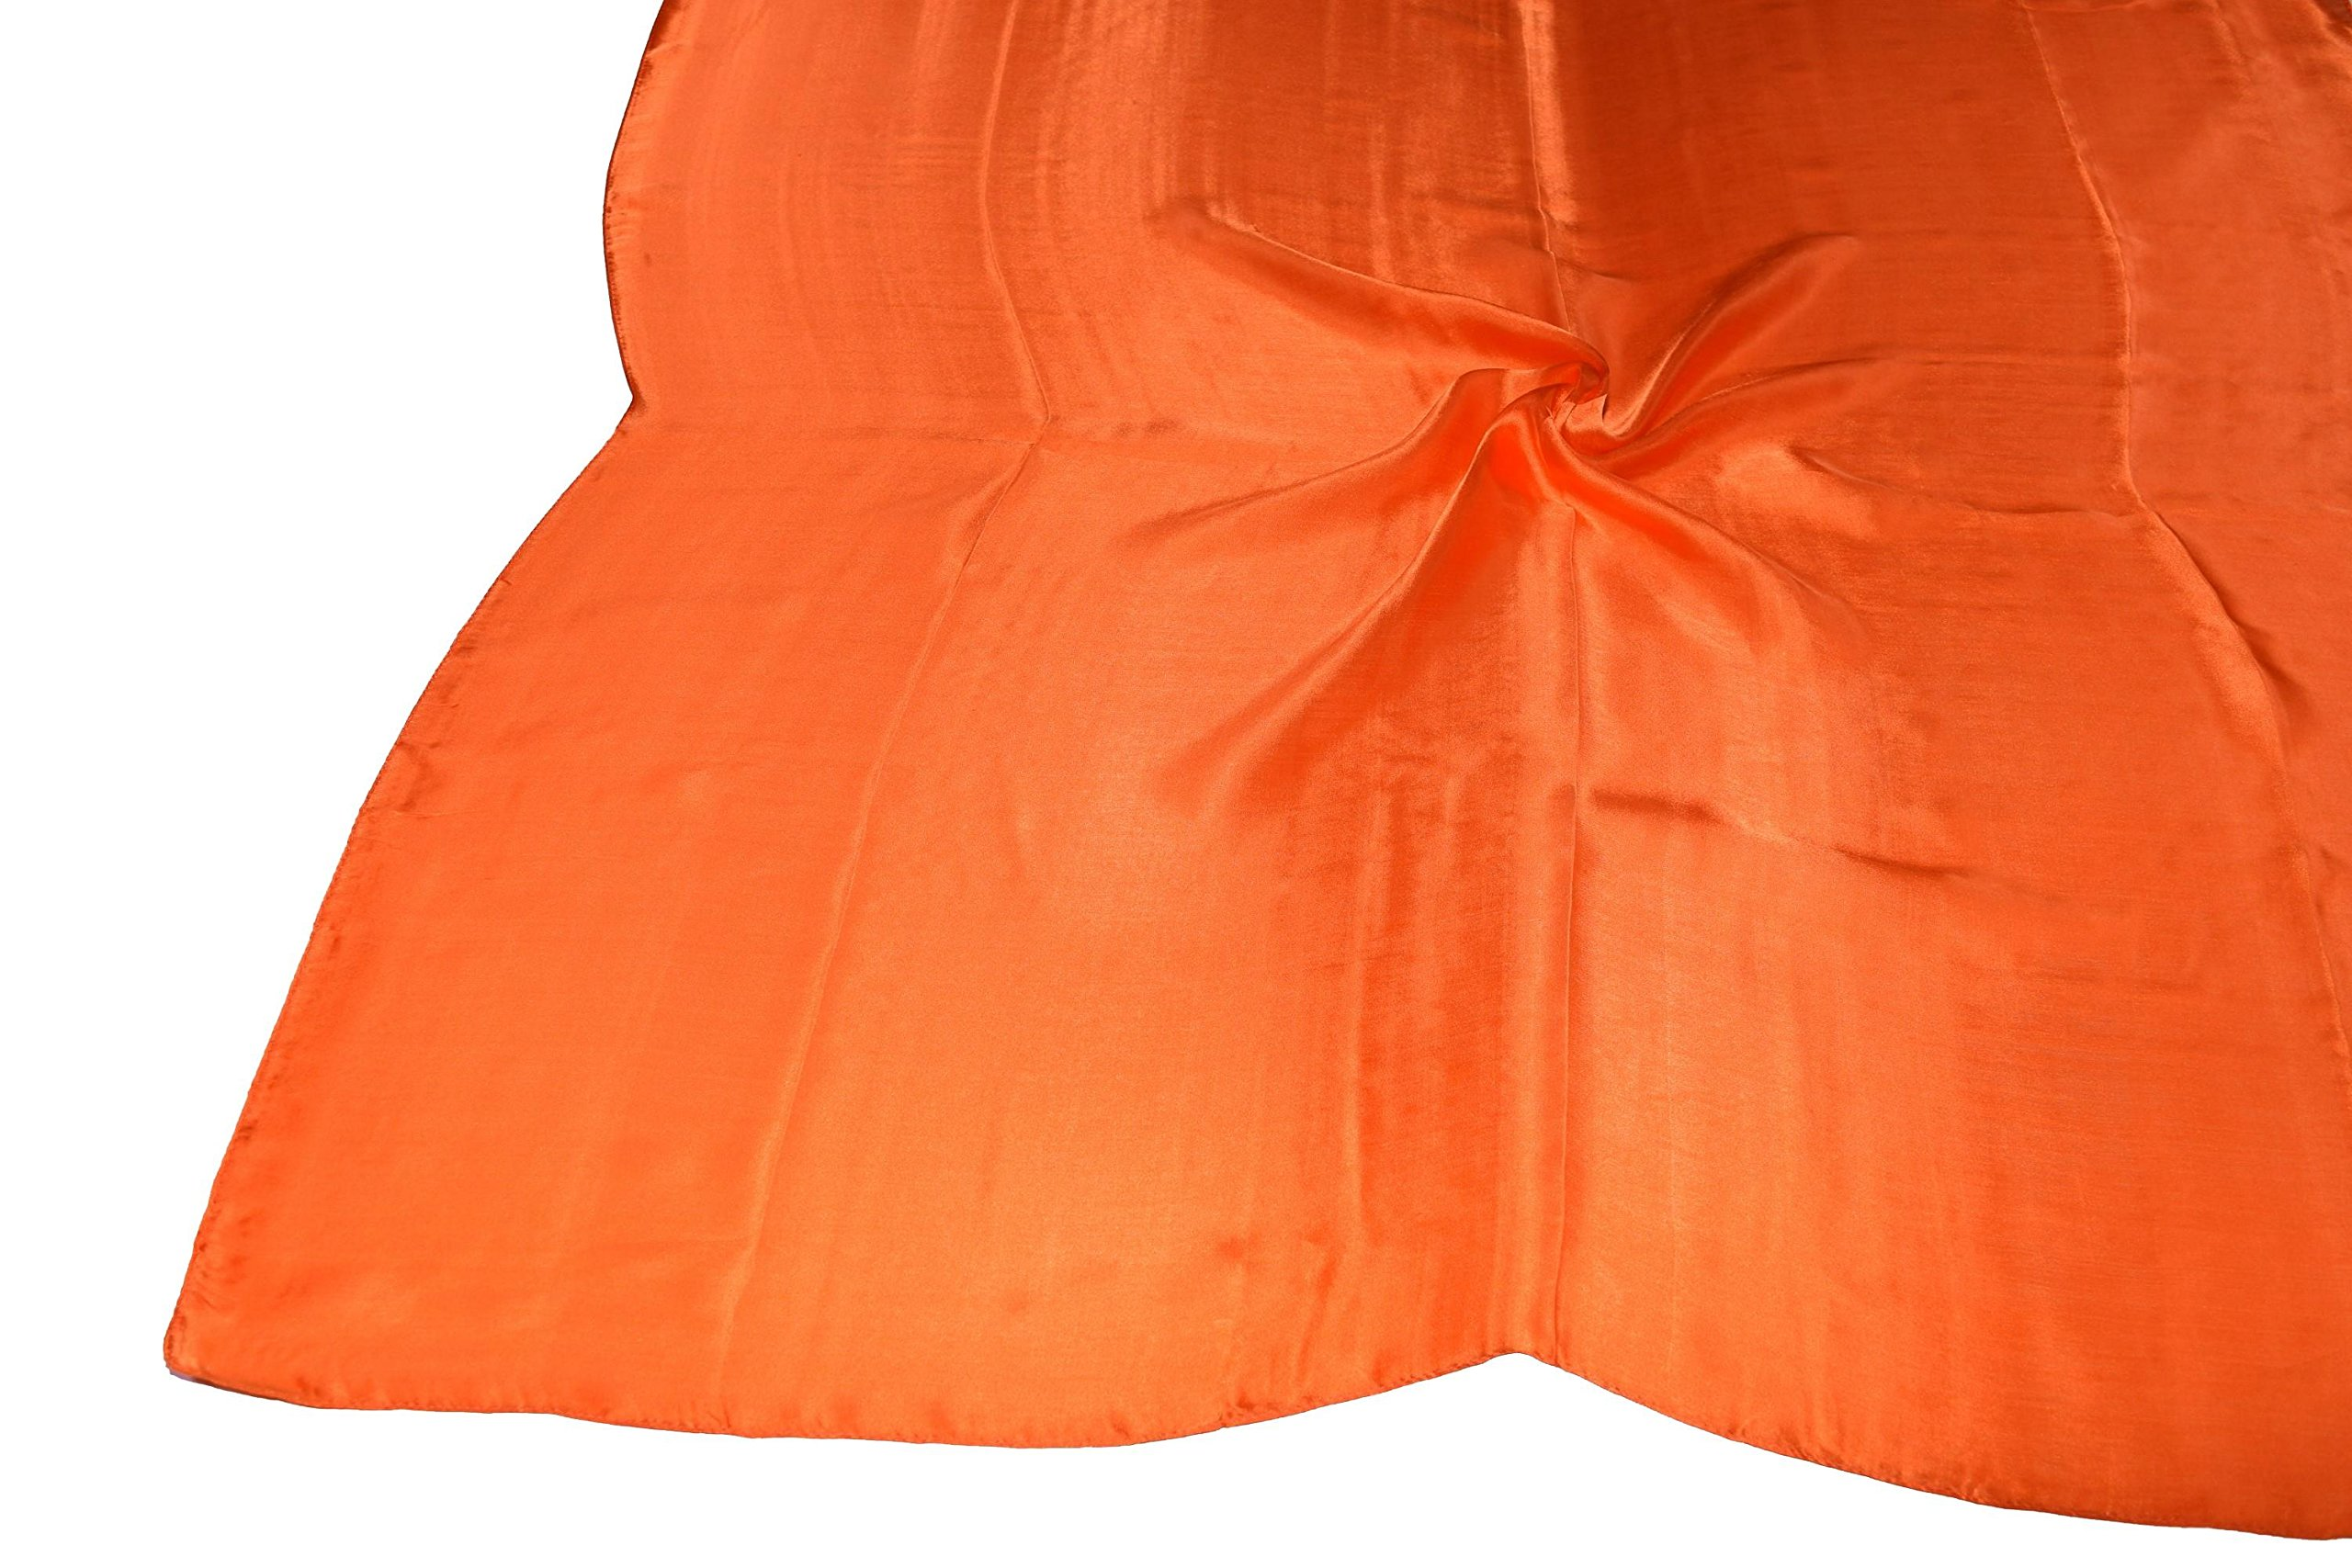 Orange Fine Silk Square Scarf by Bees Knees Fashion (Image #5)